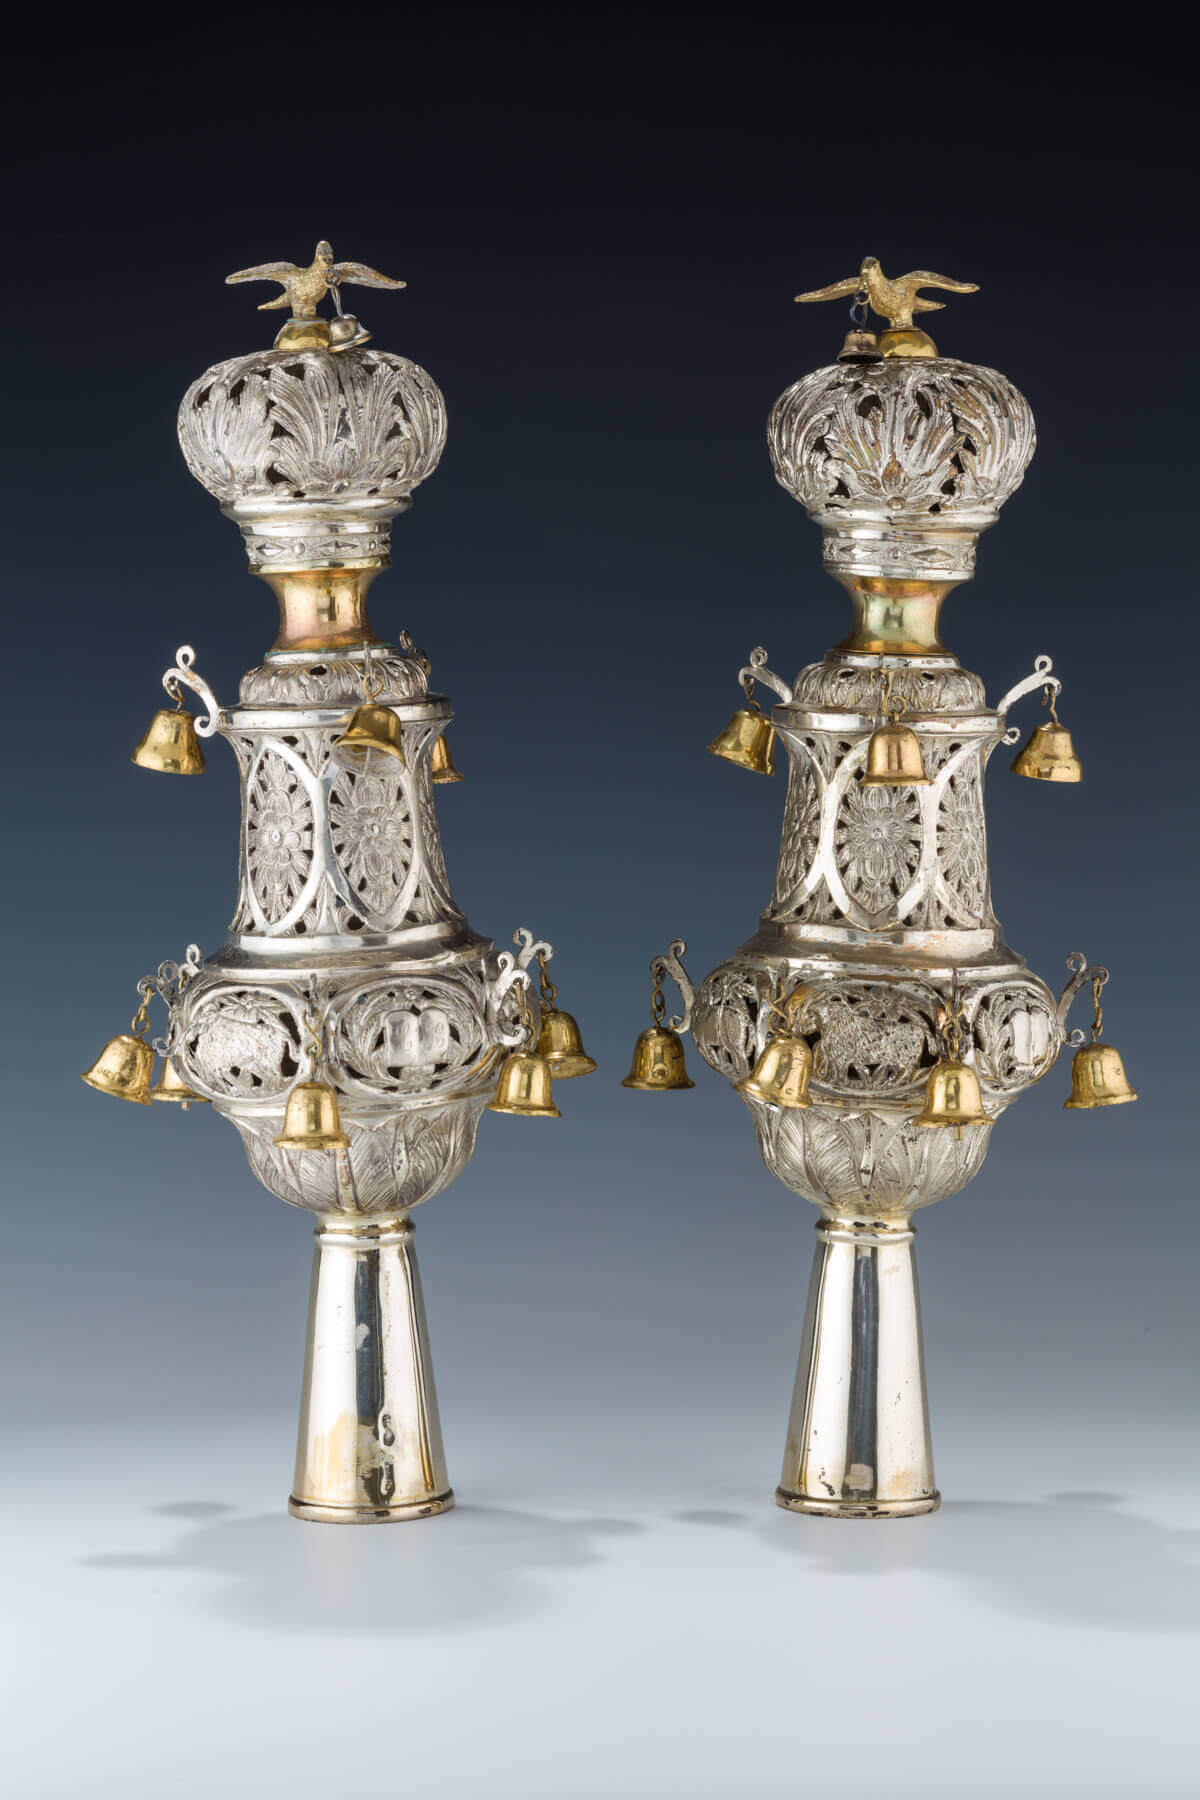 070. A PAIR OF SILVER TORAH FINIALS